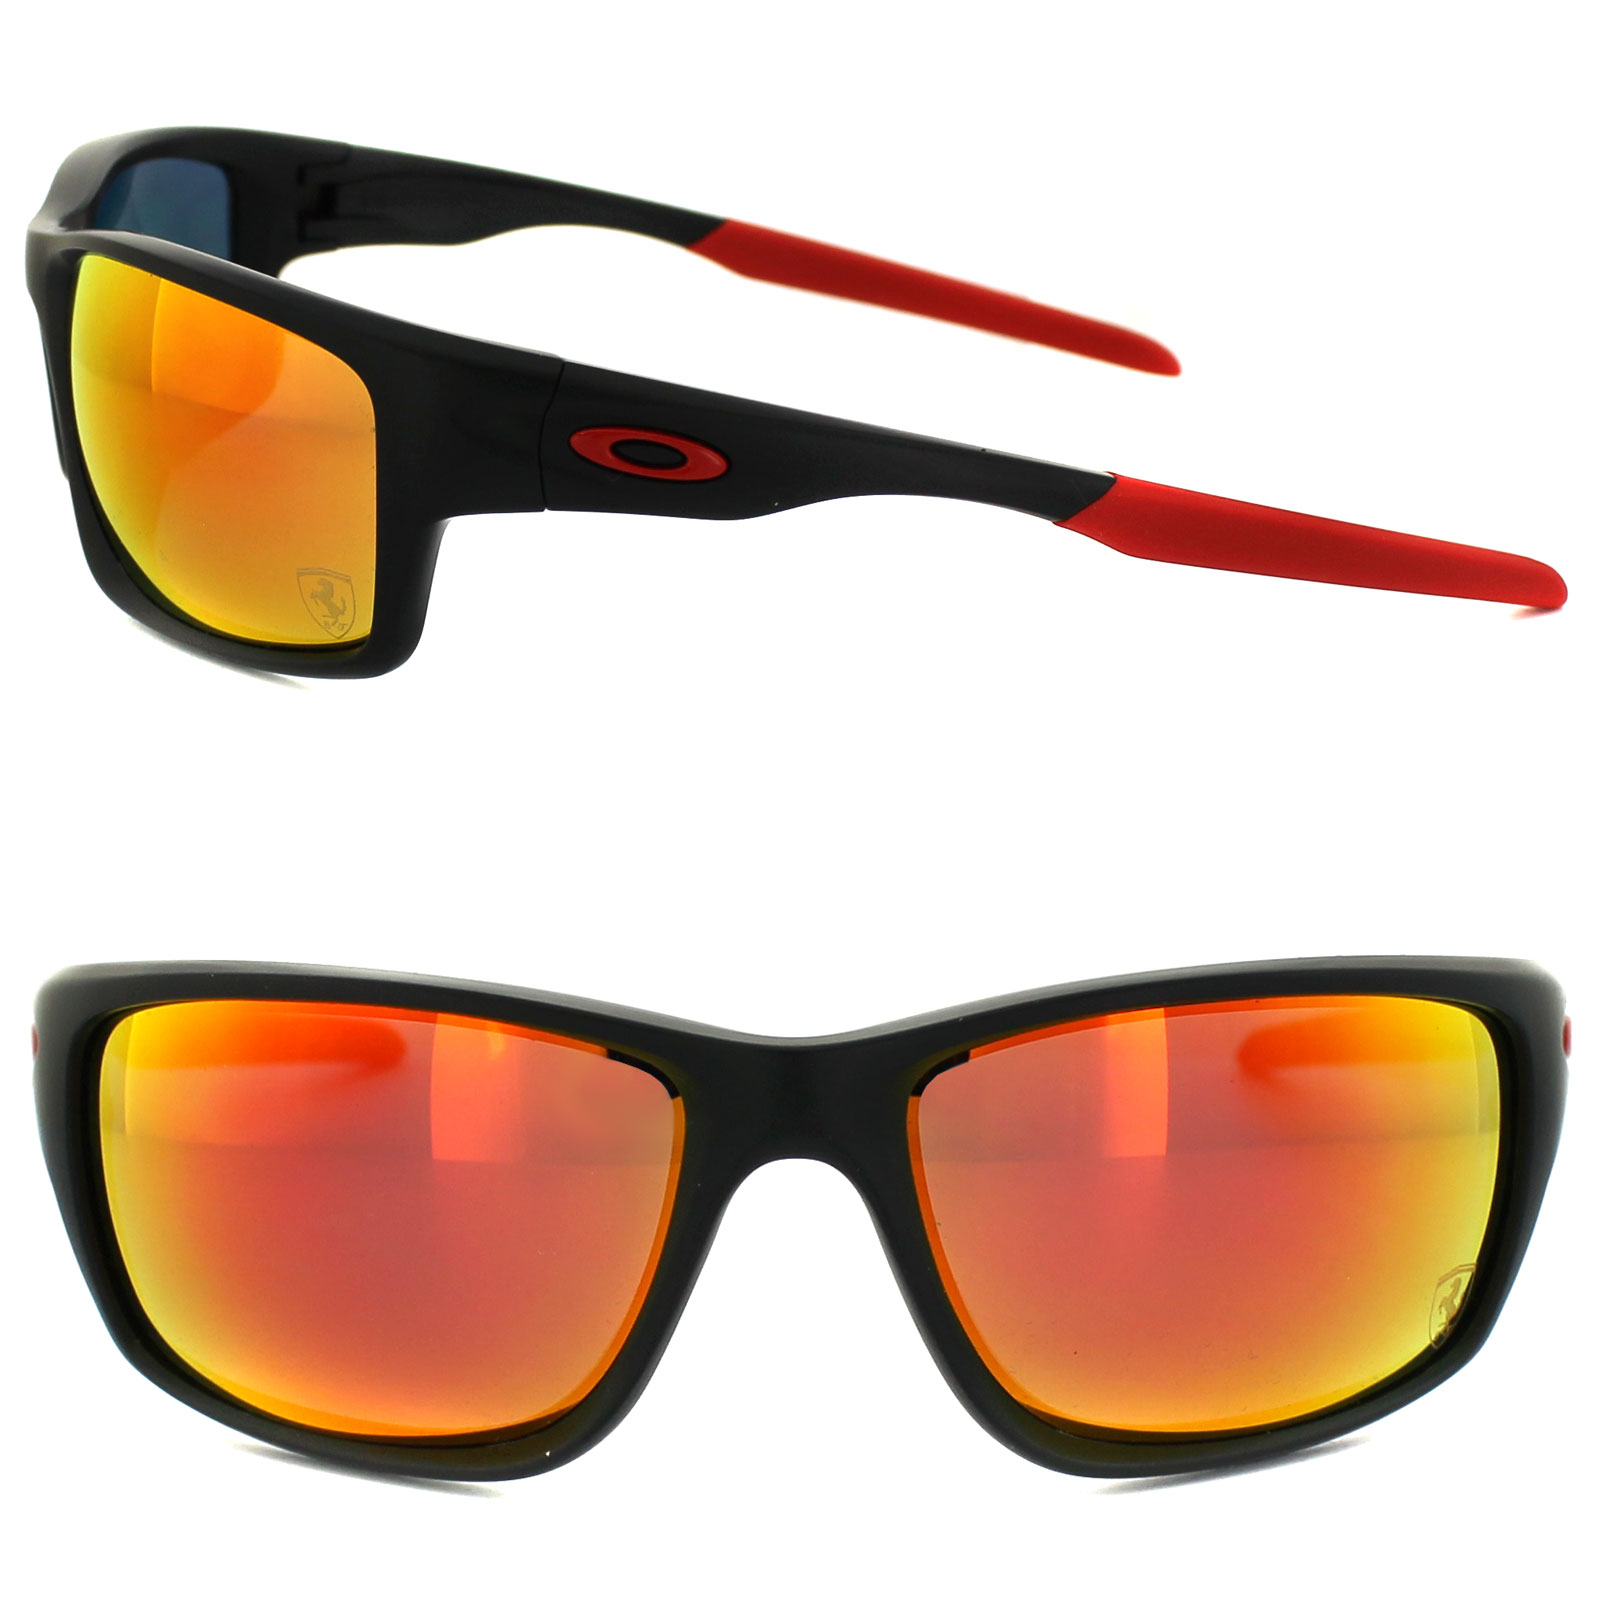 dc1b7c1ce2 ... Oakley Sunglasses Canteen 9225-06 Ferrari Matt Black Ruby Iridium  Polarized Thumbnail 2 ...